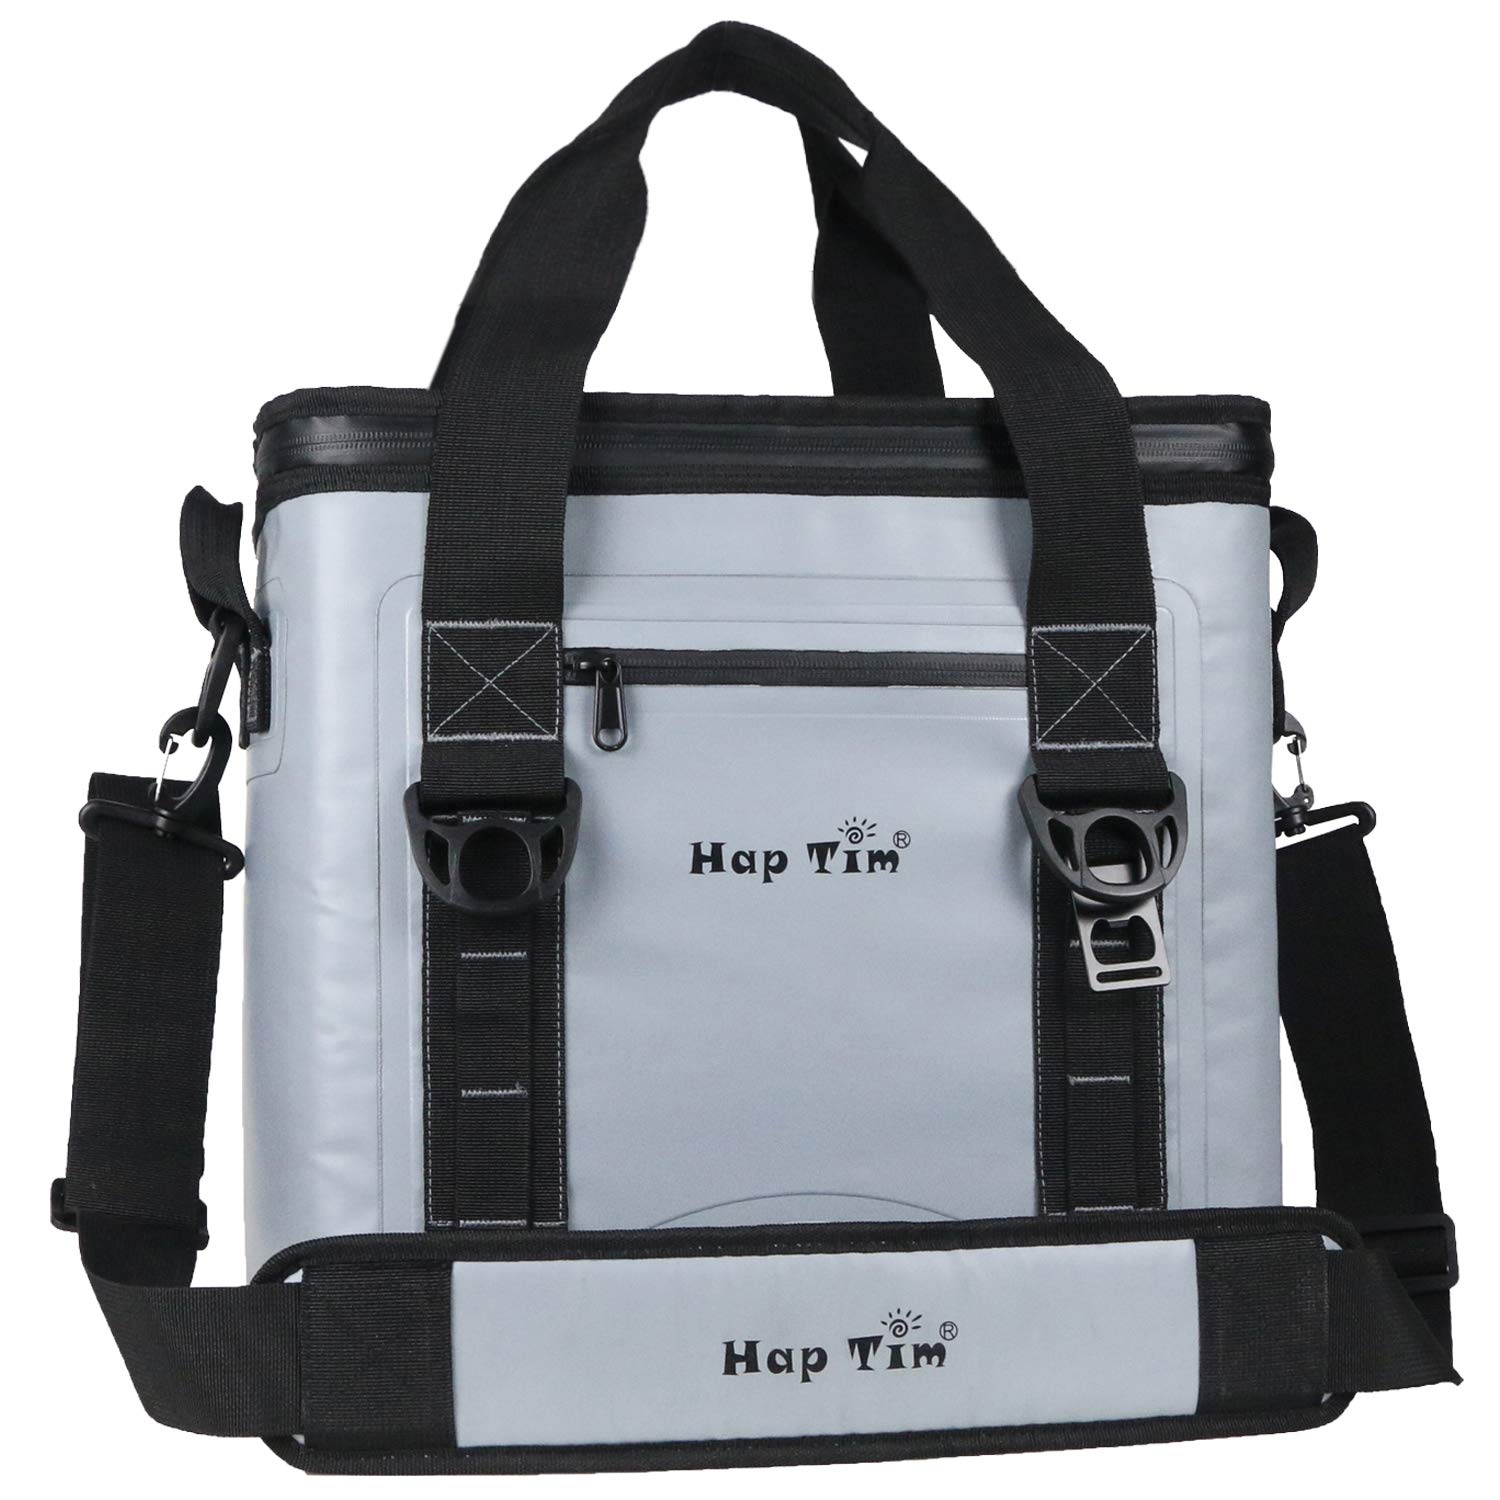 Hap Tim Cooler Bag 30 Cans Leak-Proof Soft Cooler, Portable Ice Cooler for Beach, Hiking, Camping, Picnic, Party, Sports, Sea Fishing (TL52005-G) by Hap Tim